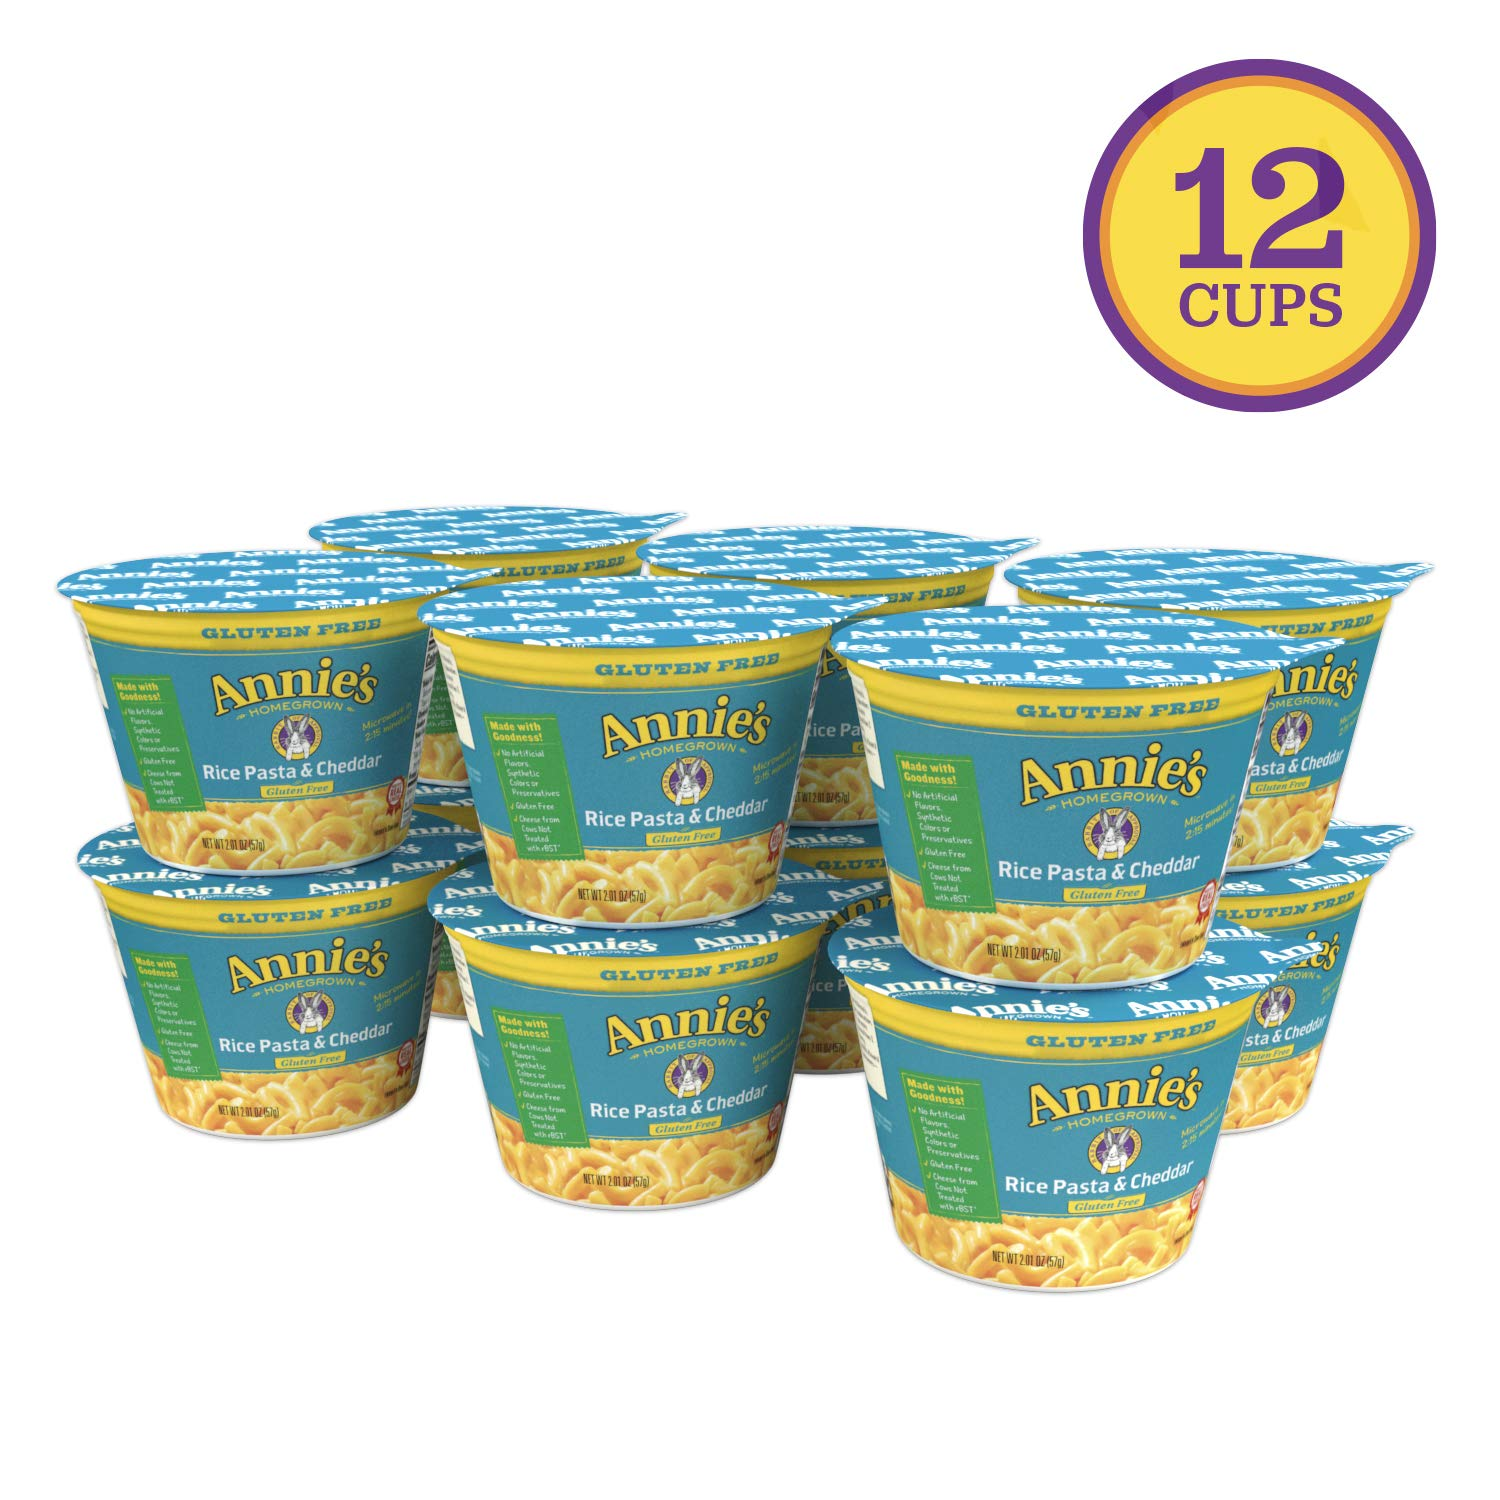 Annie's Gluten Free Rice Pasta & Cheddar Microwavable Macaroni & Cheese